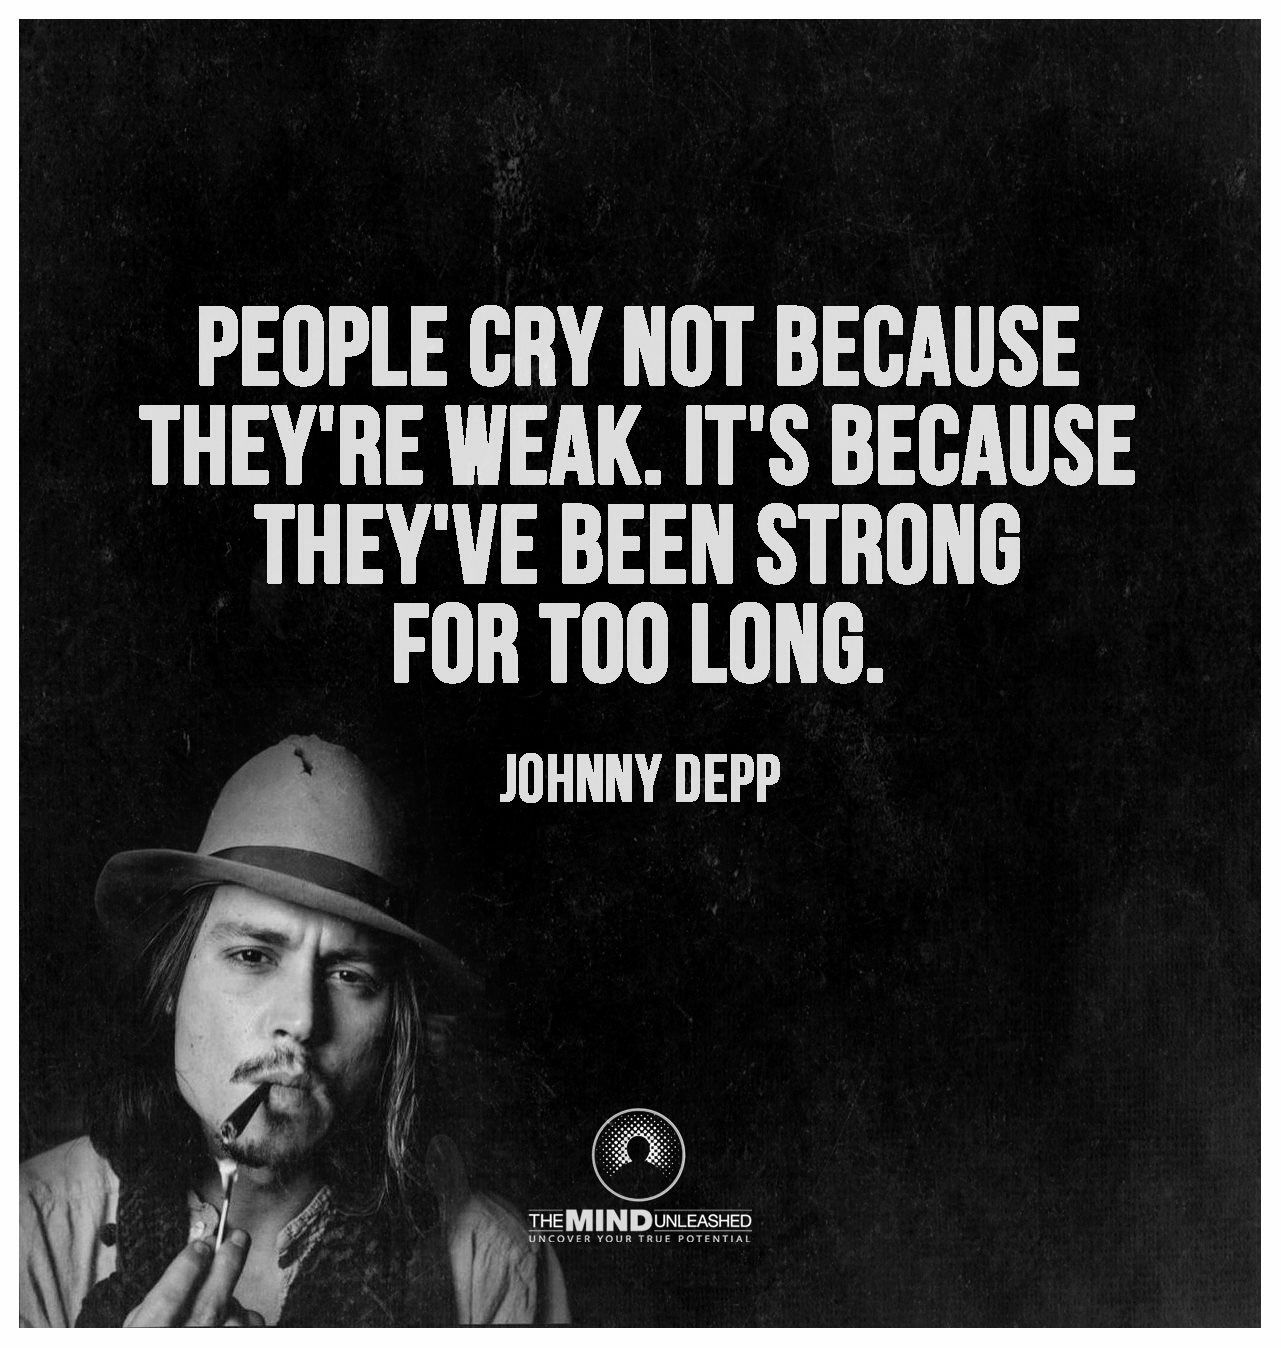 Pin By Tanya Smith On Quotes Funny Quotes Mind Unleashed Johnny Depp